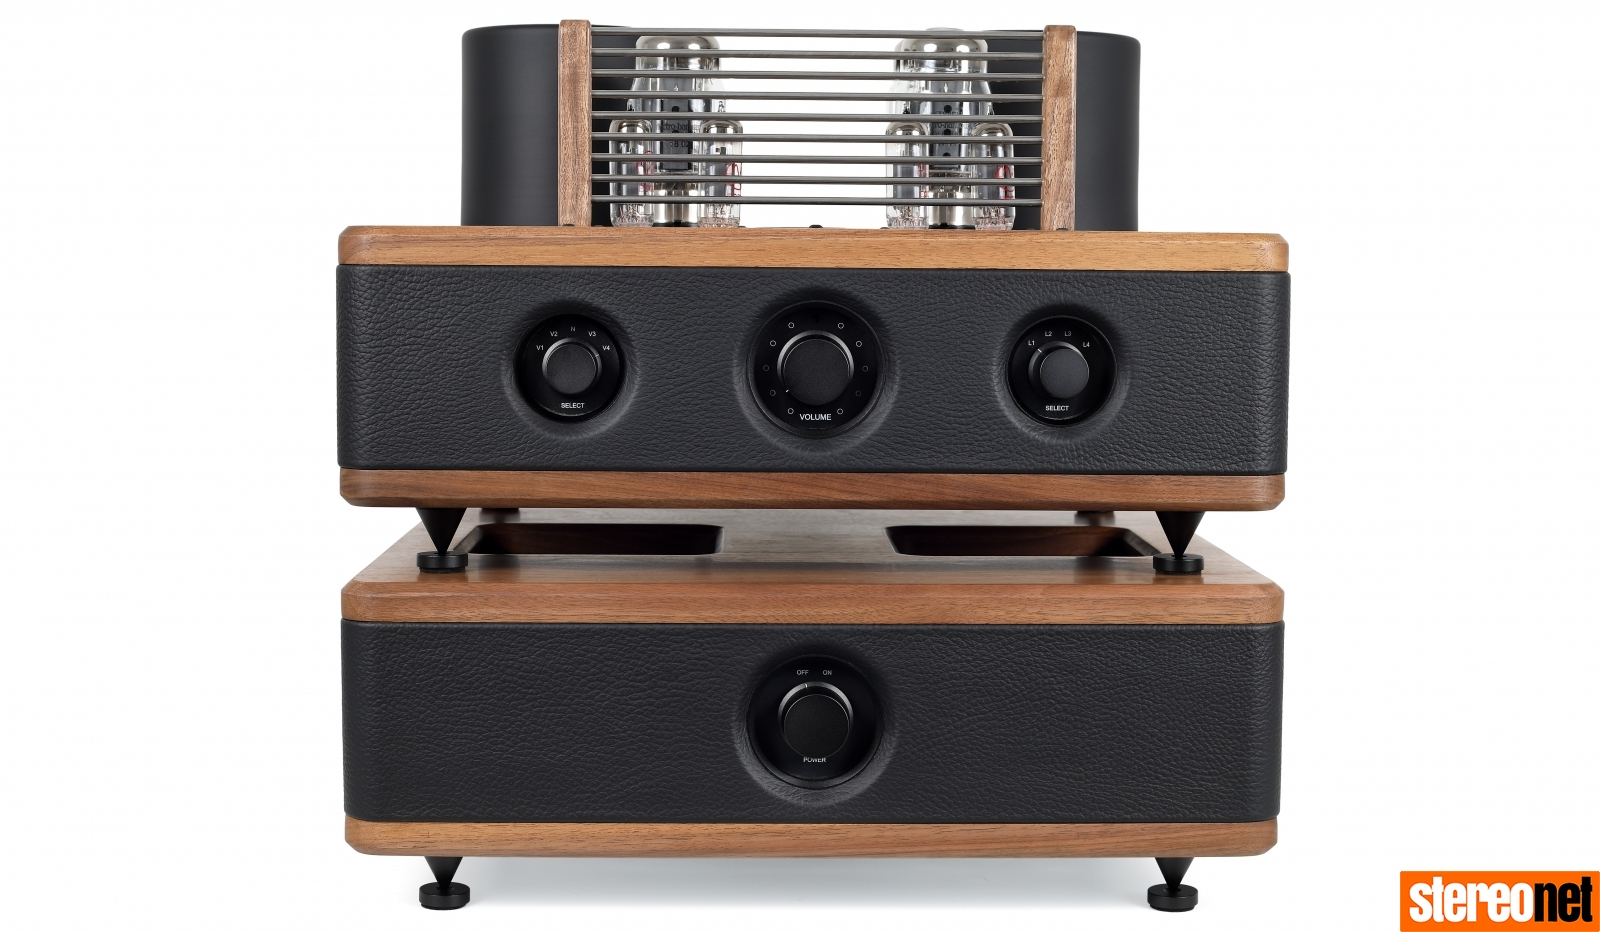 Auris Fortino88 integrated amp